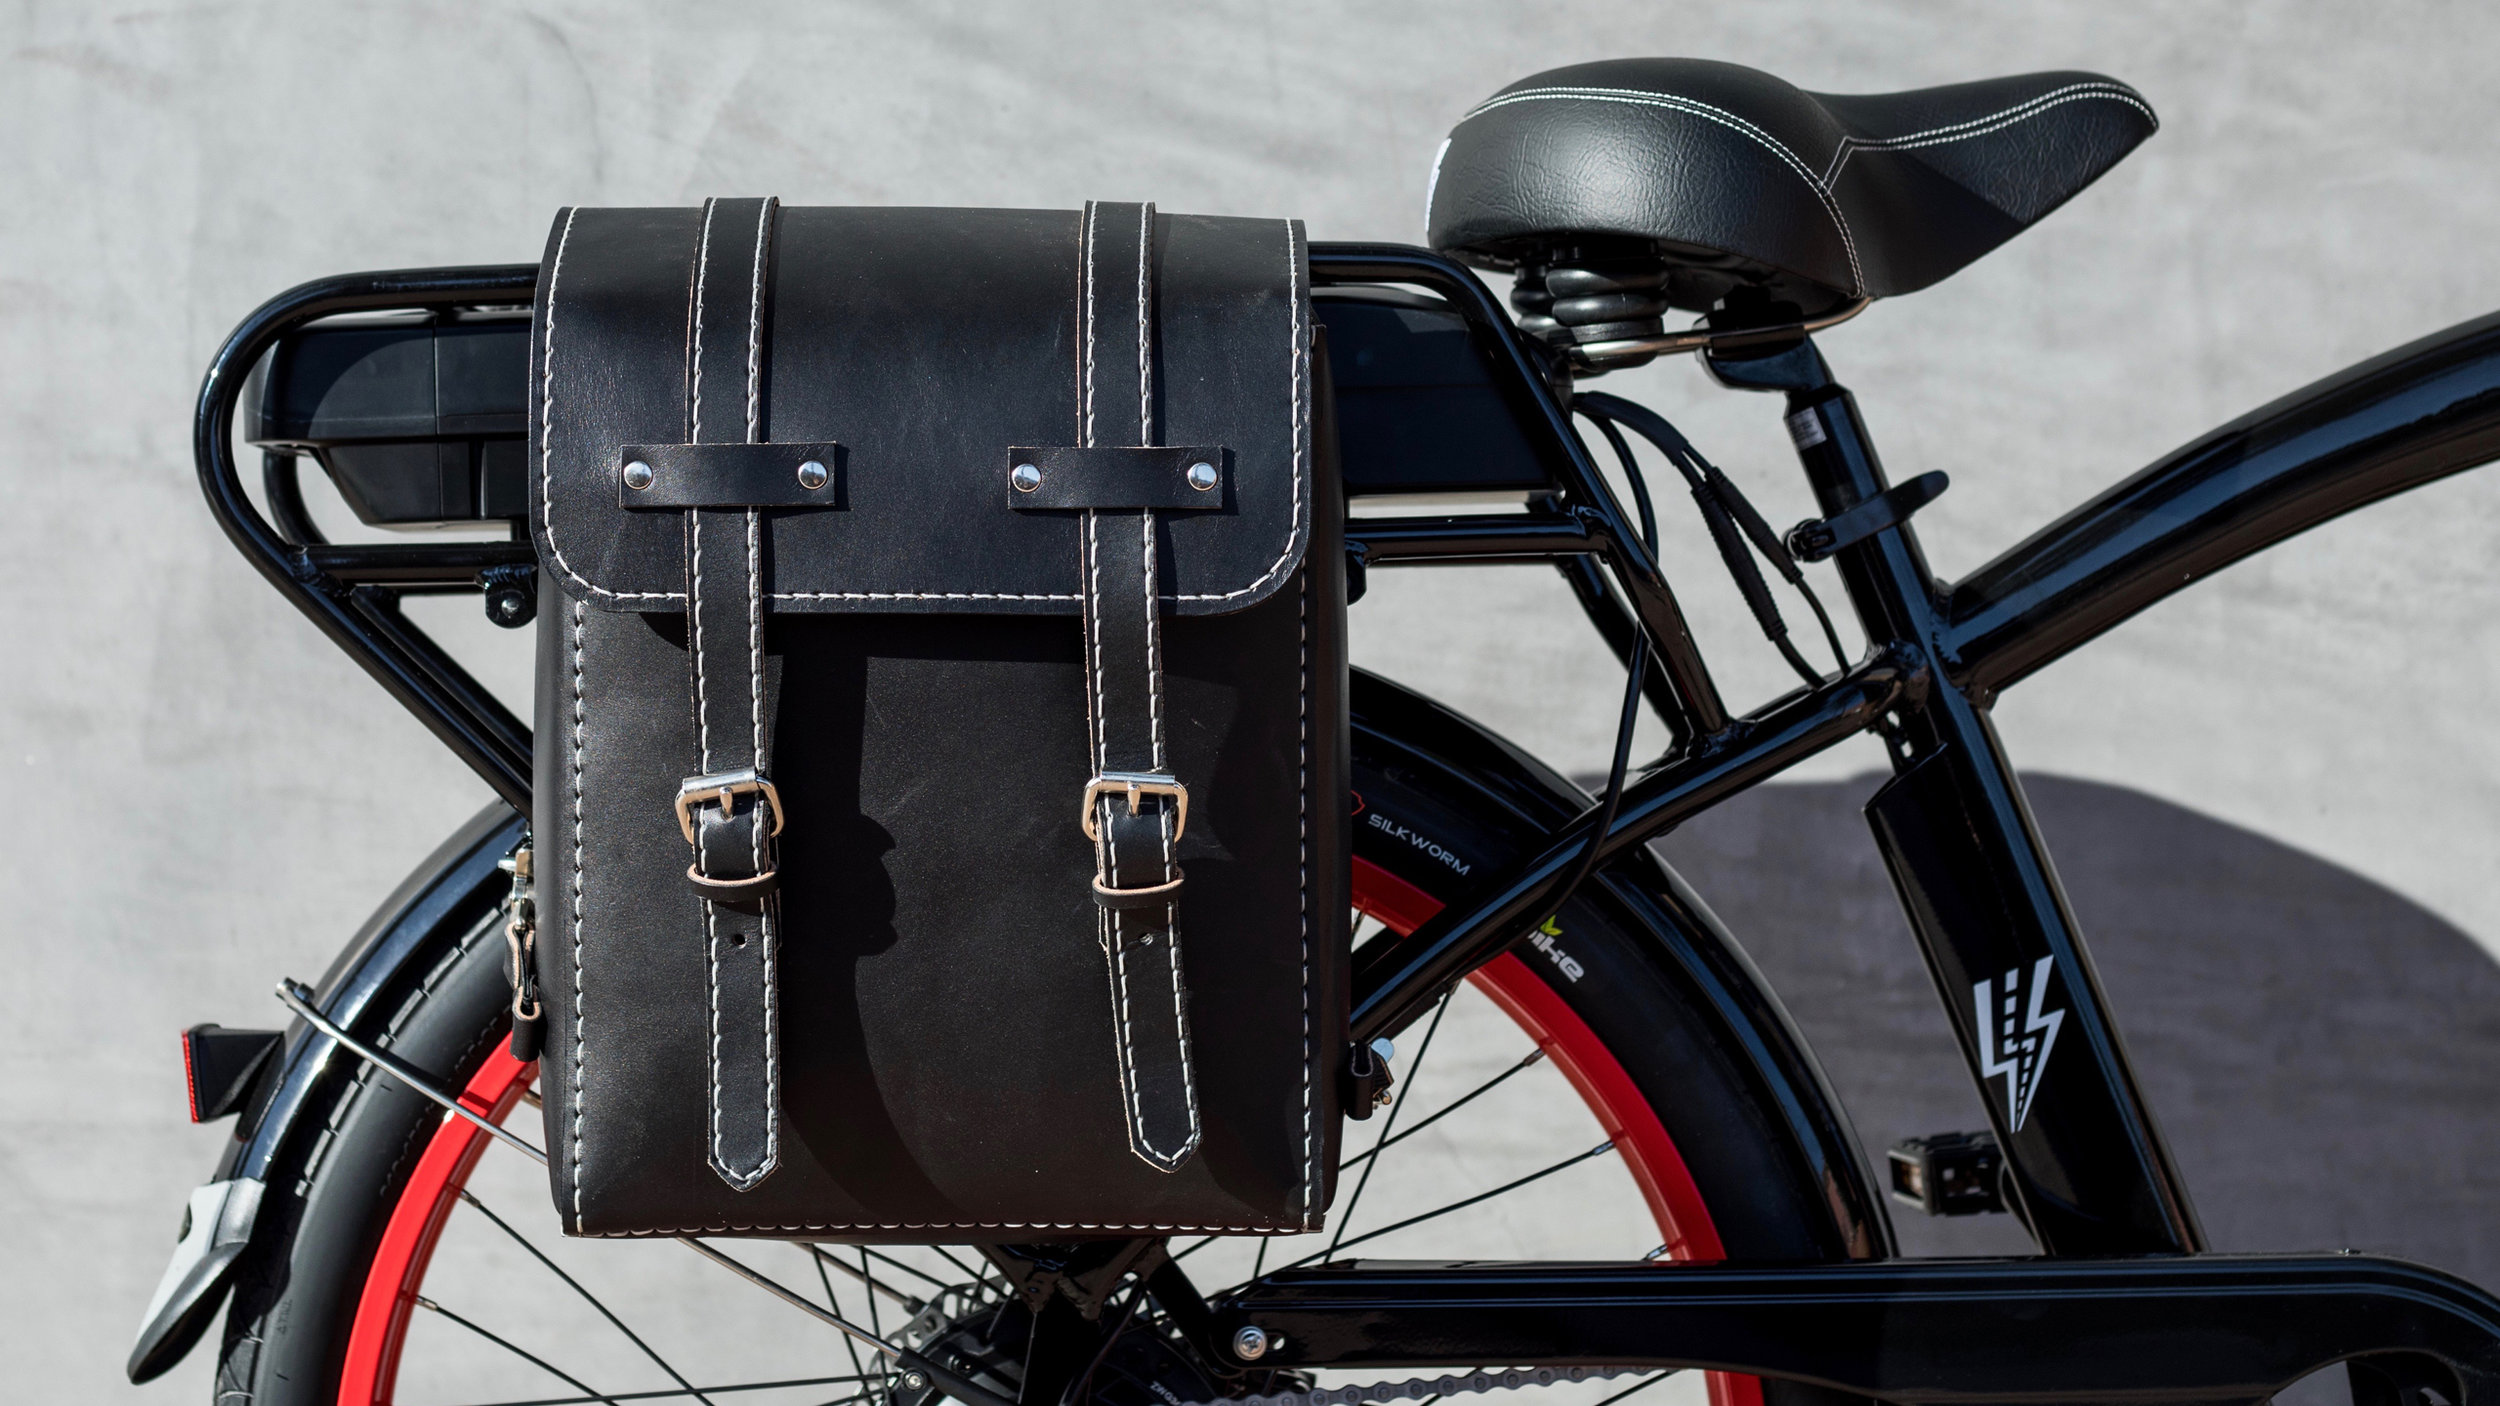 electrified-reviews-electric-bike-company-model-c-electric-bike-review-leather-saddle-bags.jpg